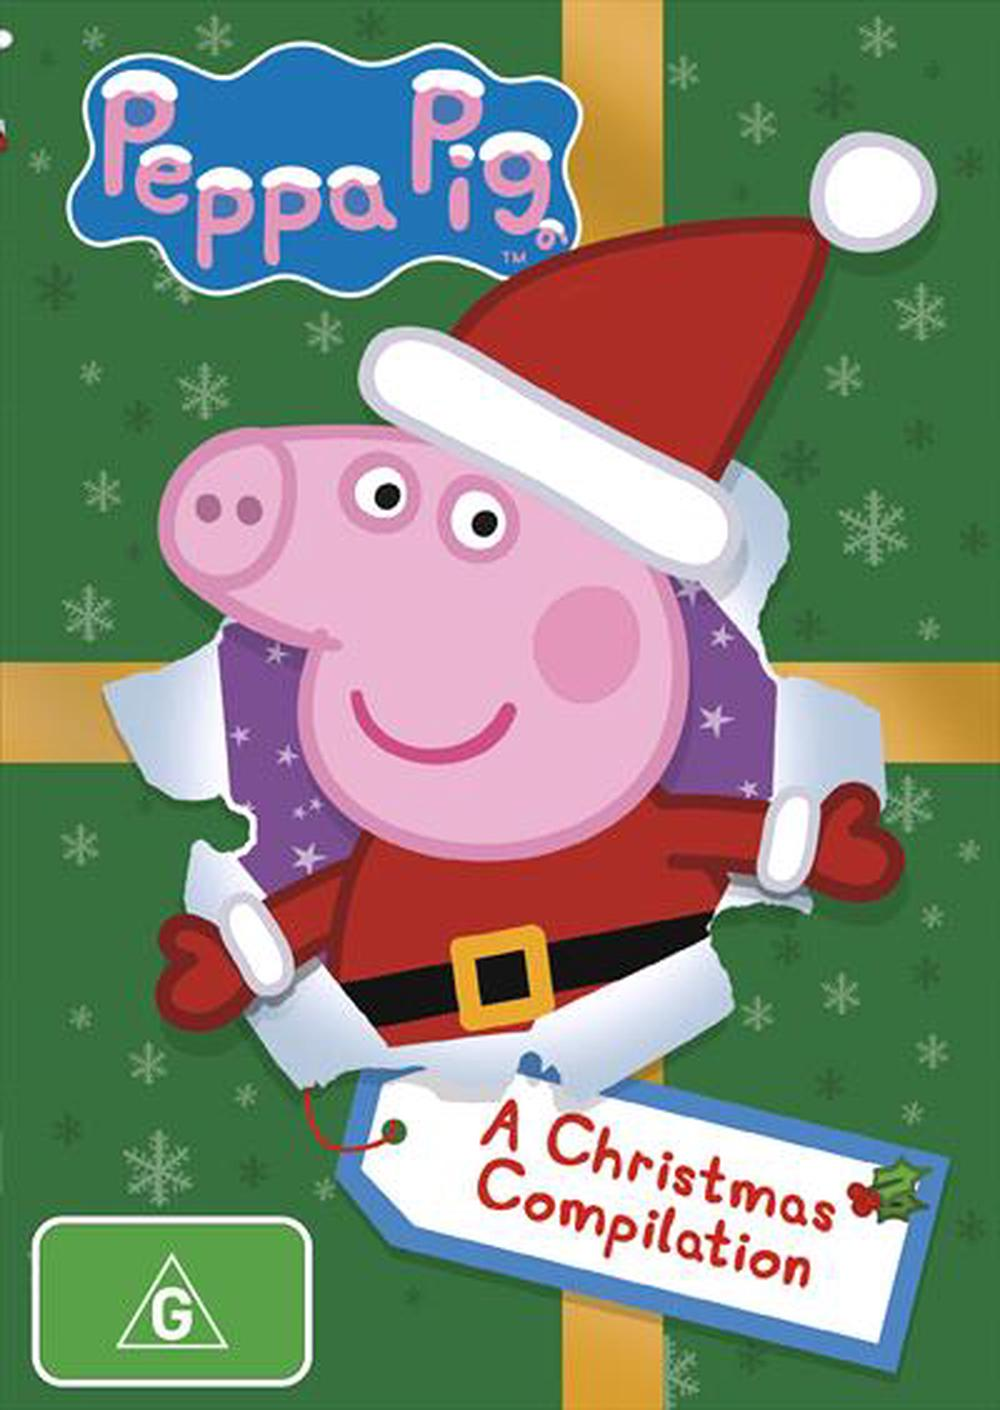 Peppa Pig - A Christmas Compilation